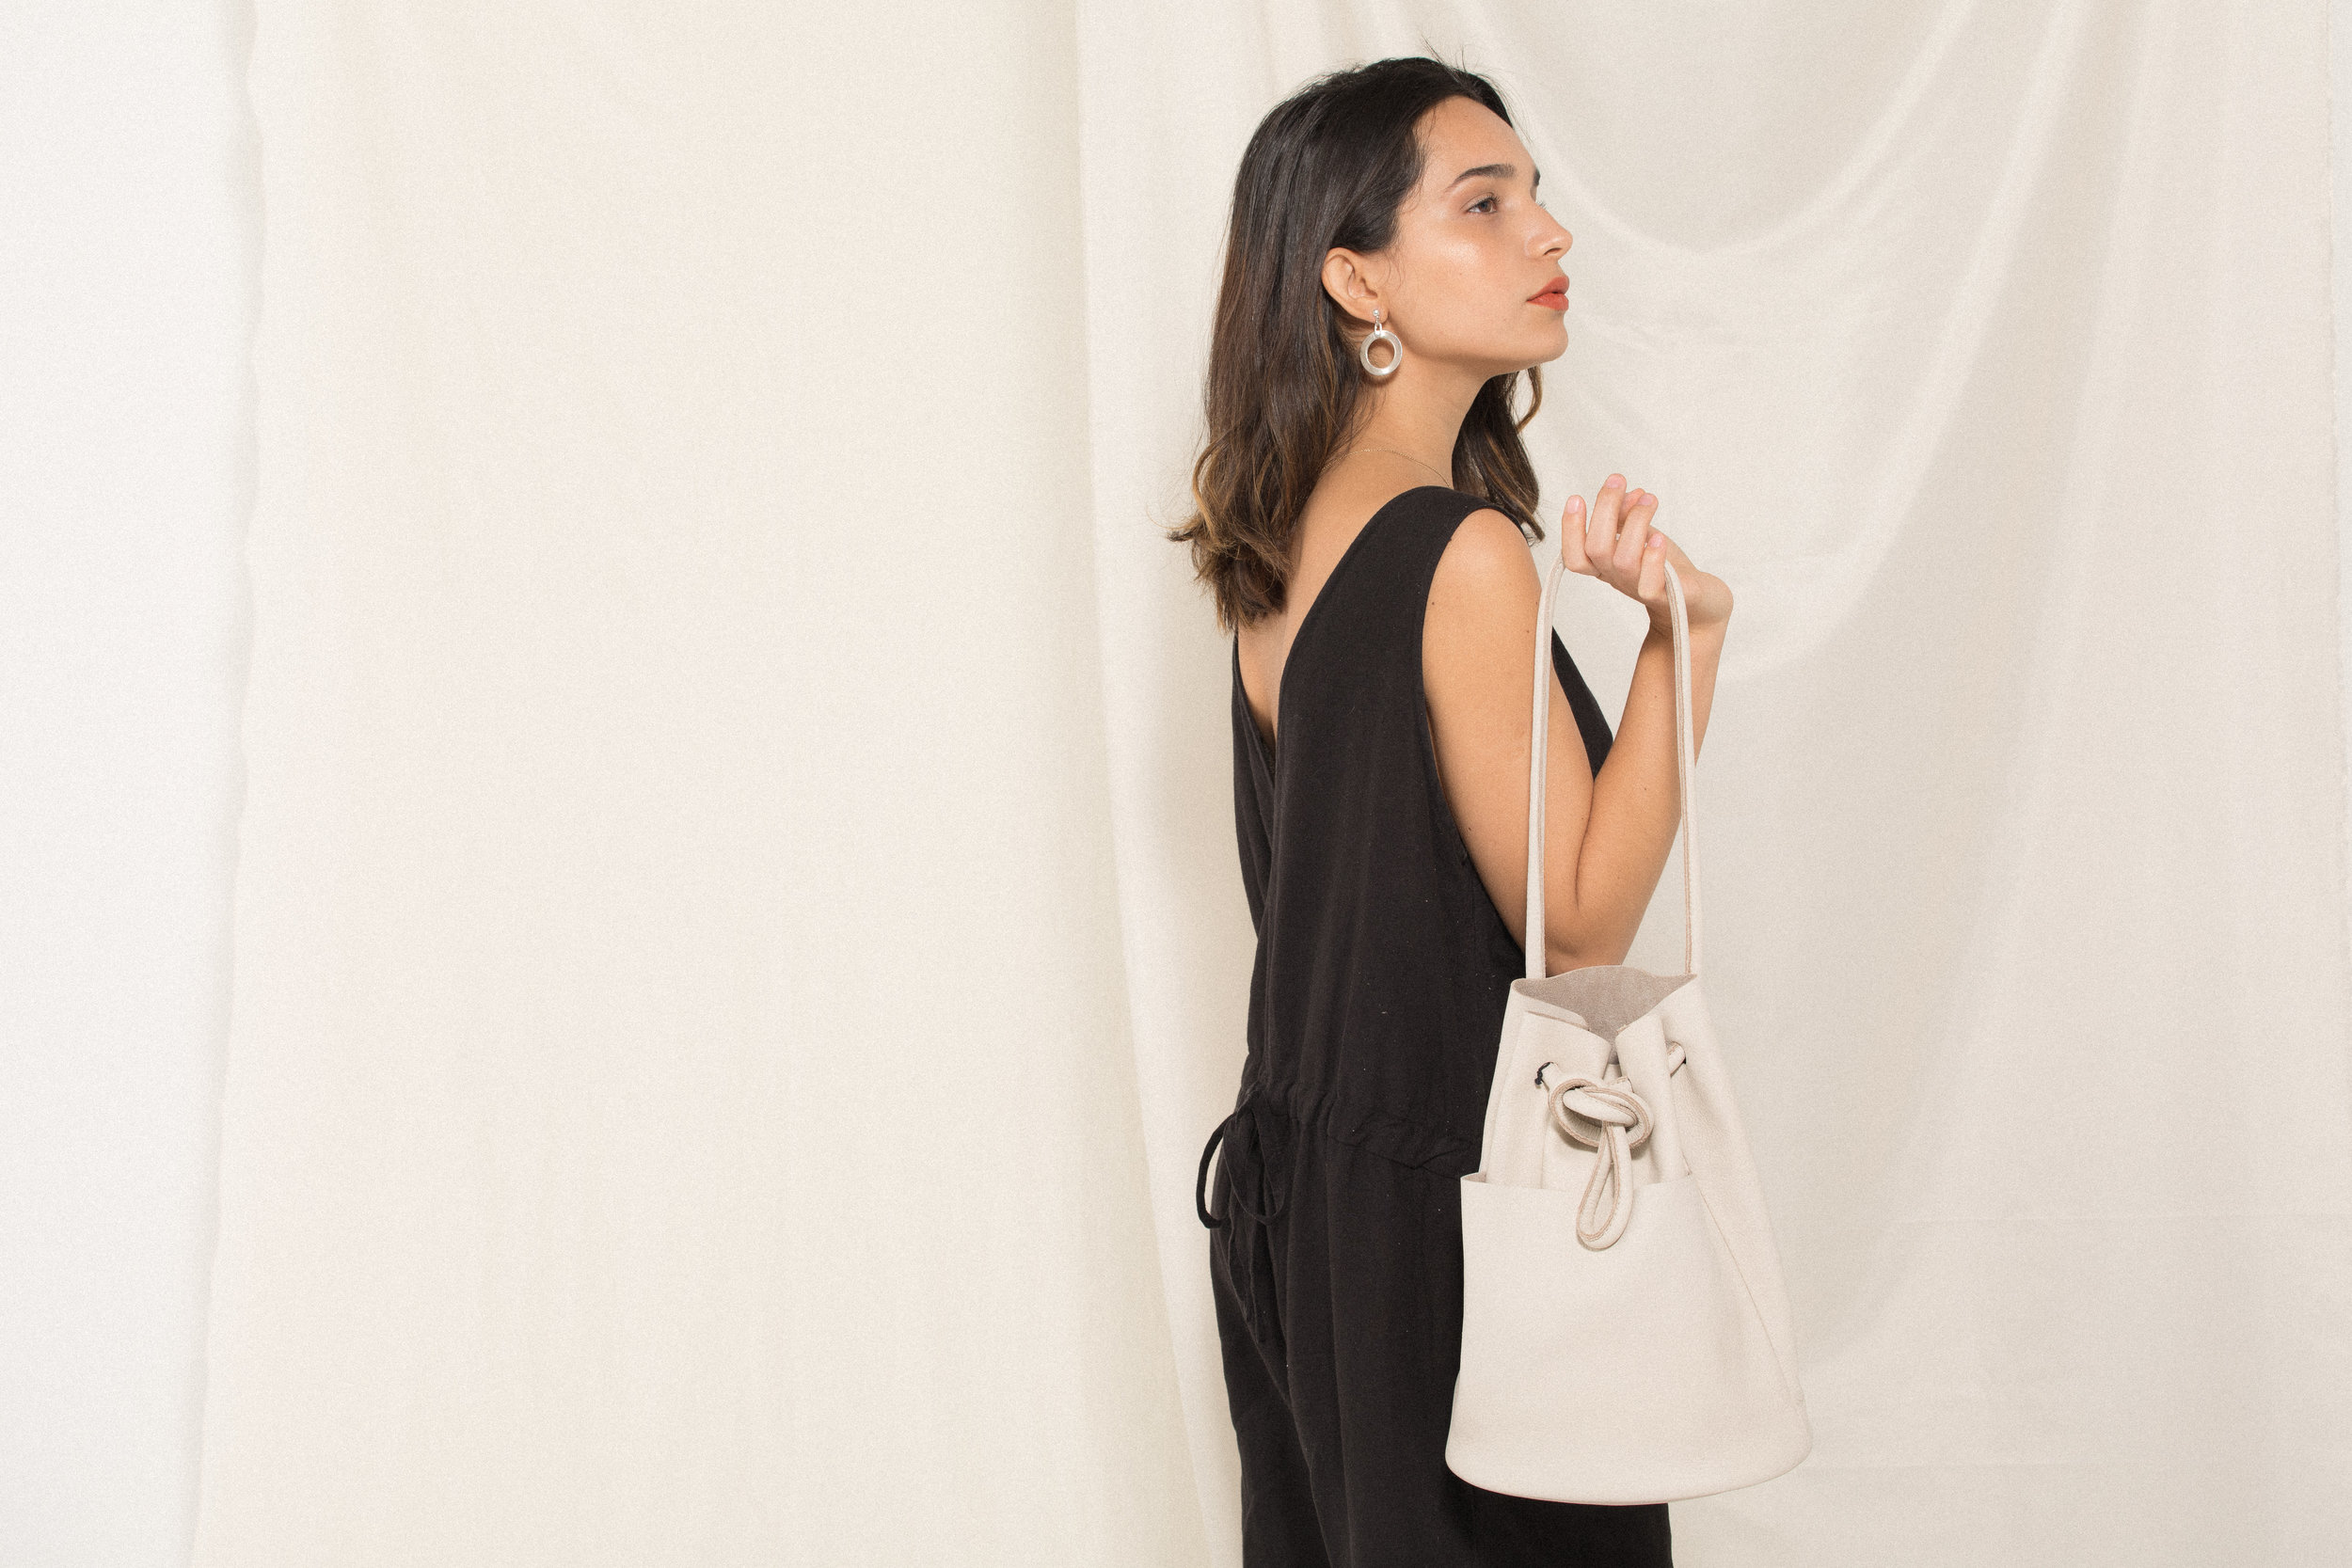 Radiant Hoop Earrings / Alison Crop Jumper - Black / Tube Bag - Bone